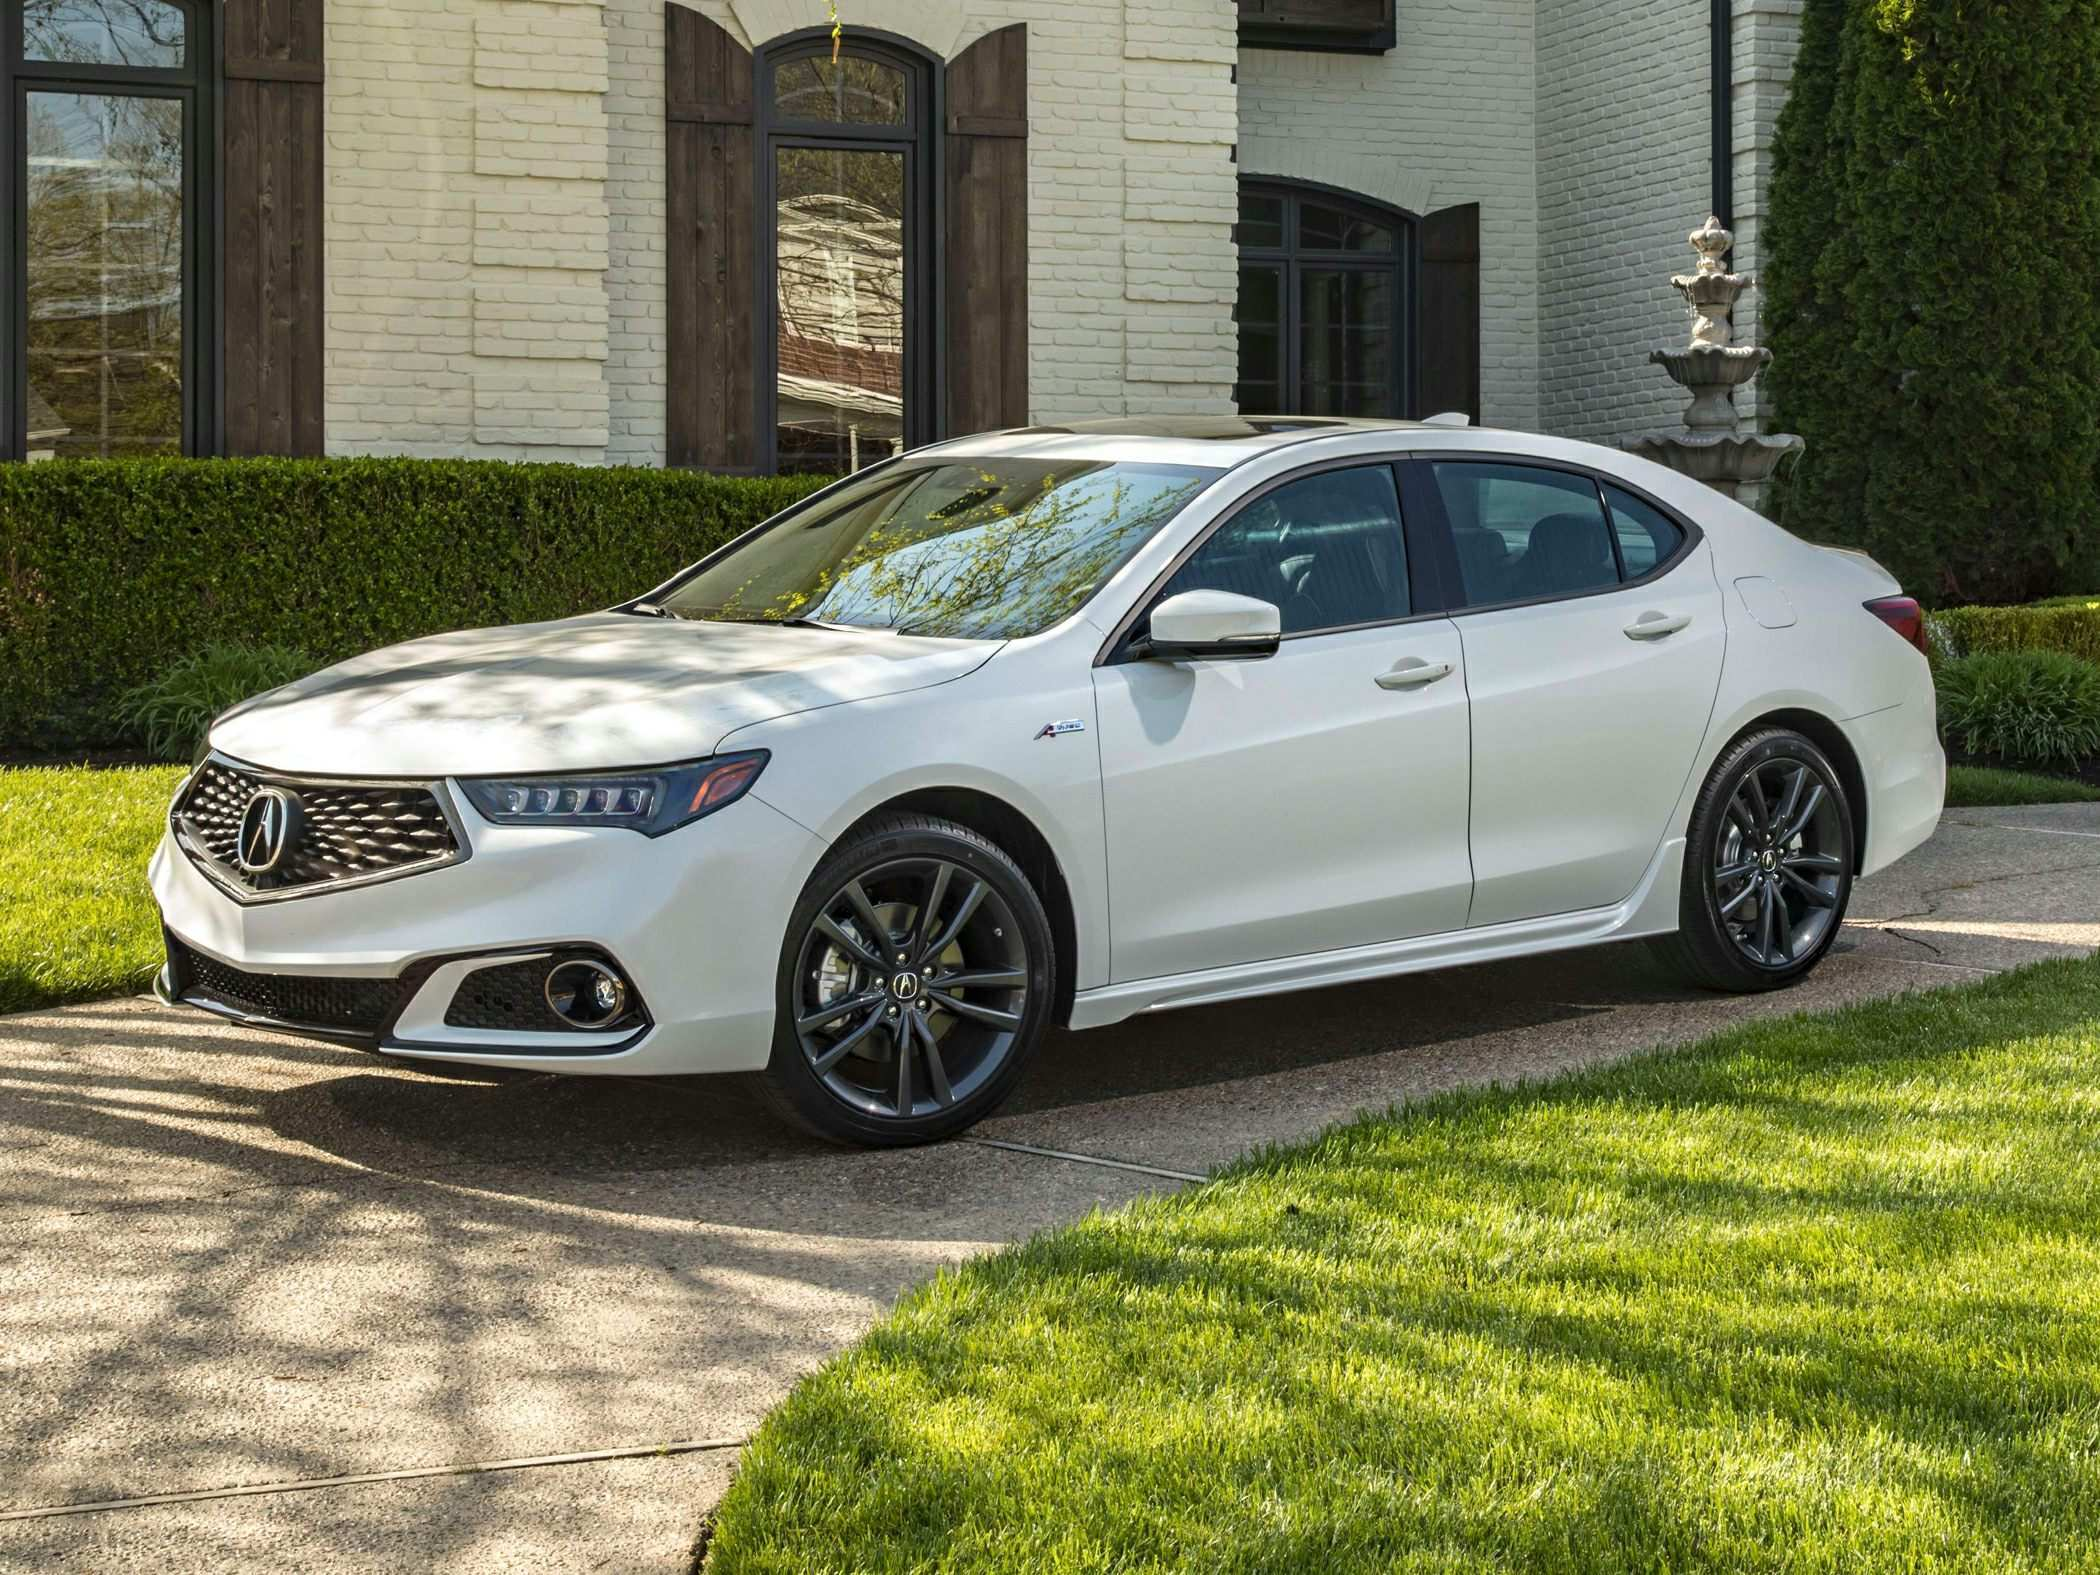 22 Best Review Acura Tlx 2020 Model Spy Shoot by Acura Tlx 2020 Model